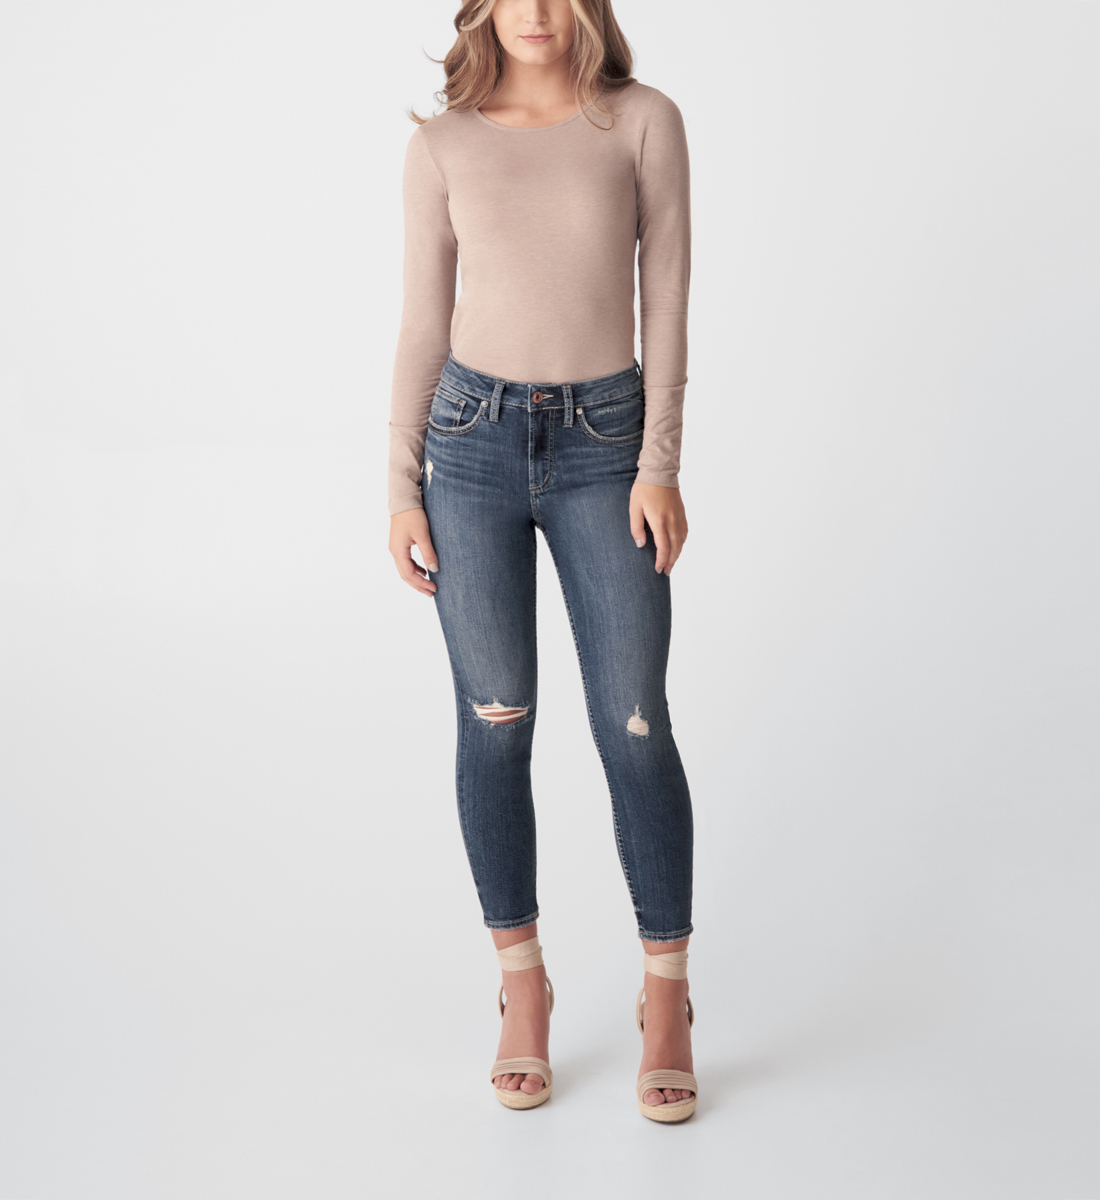 Silver Jeans Avery High Rise Skinny Crop Jeans